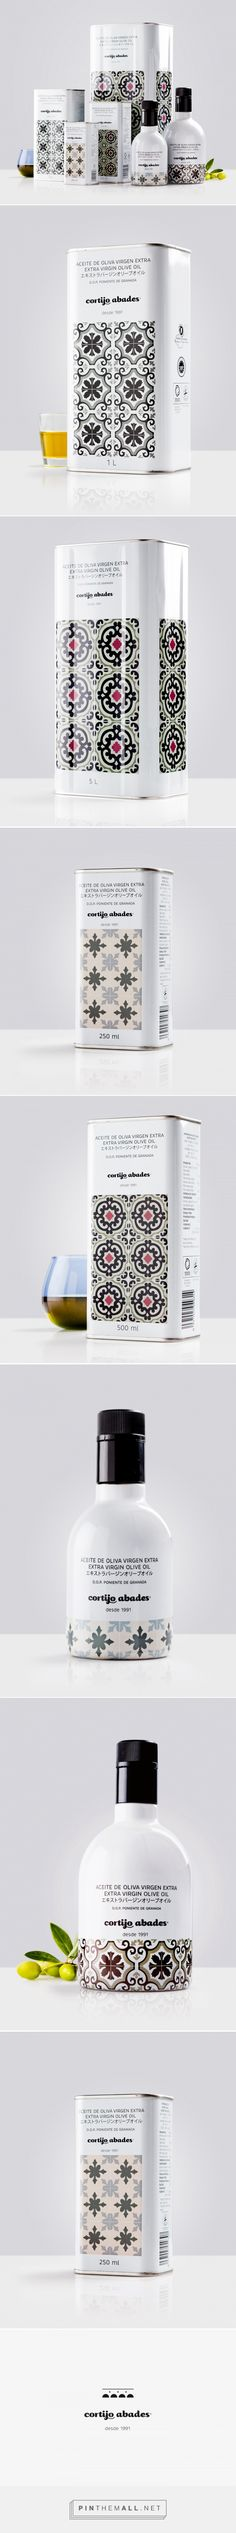 Cortijo Abades olive oil packaging design by Buenaventura Estudio - http://www.packagingoftheworld.com/2017/09/cortijo-abades.html